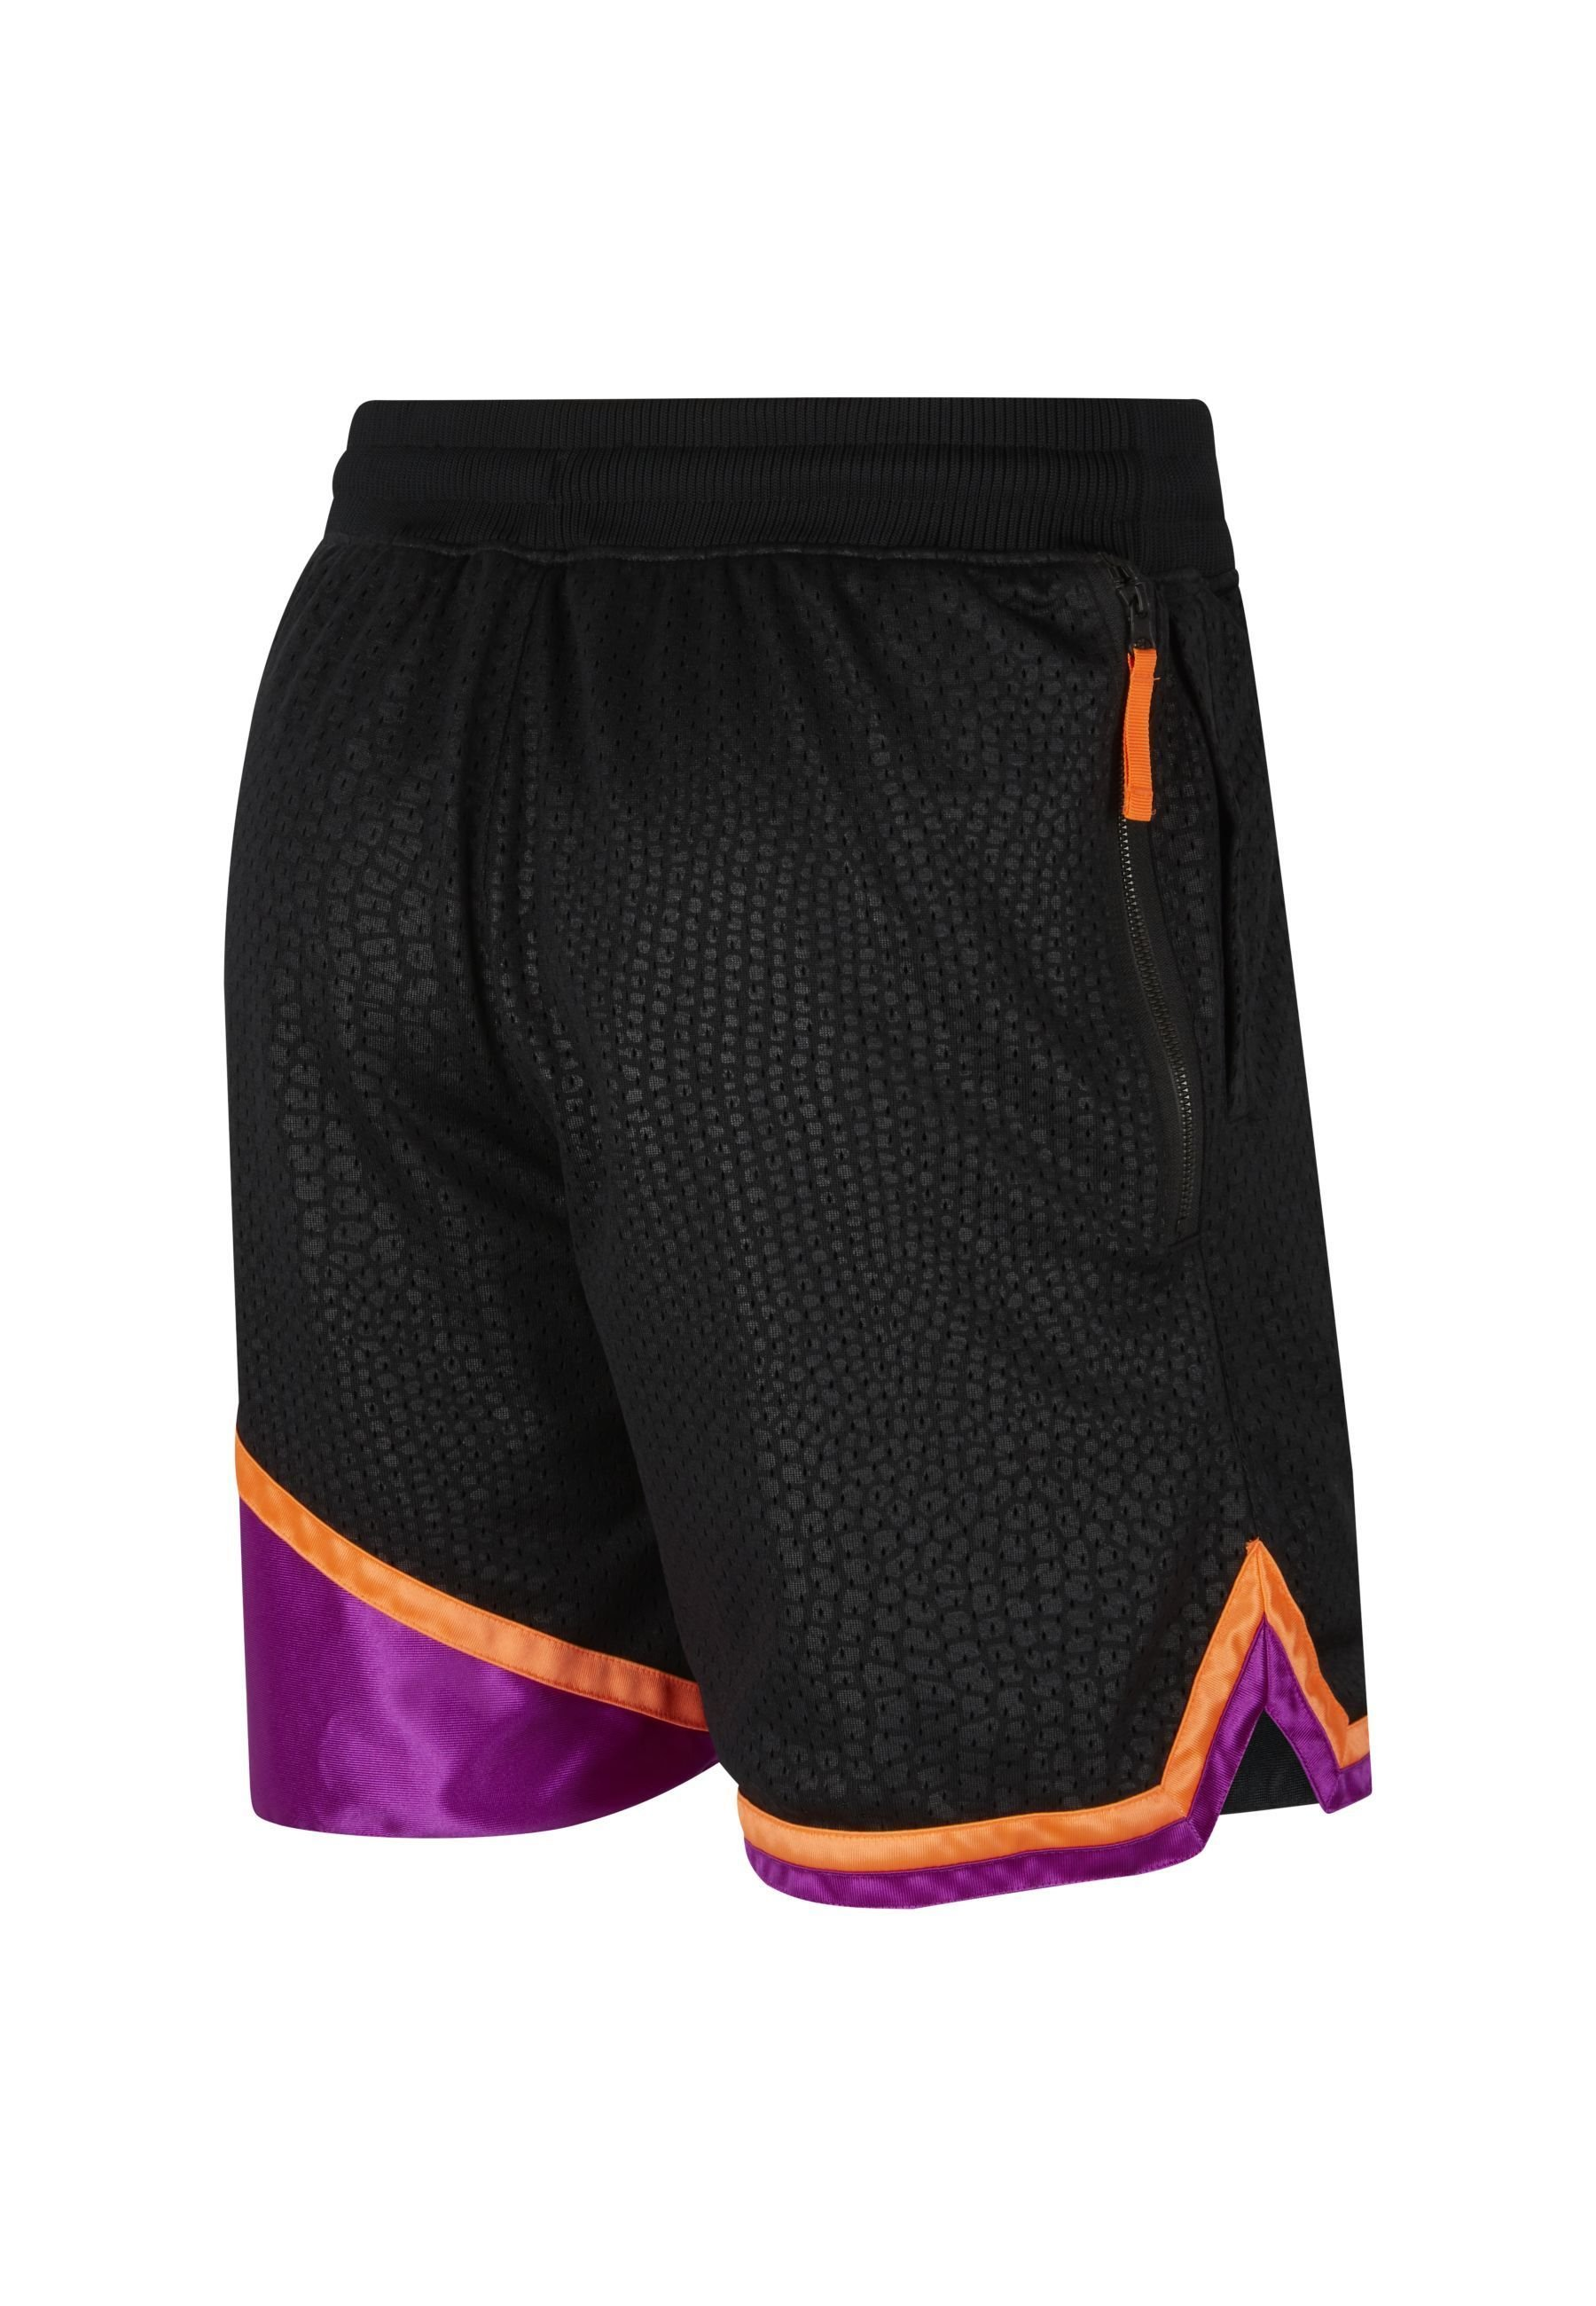 Nike Performance Short - black/vivid purple/total orange